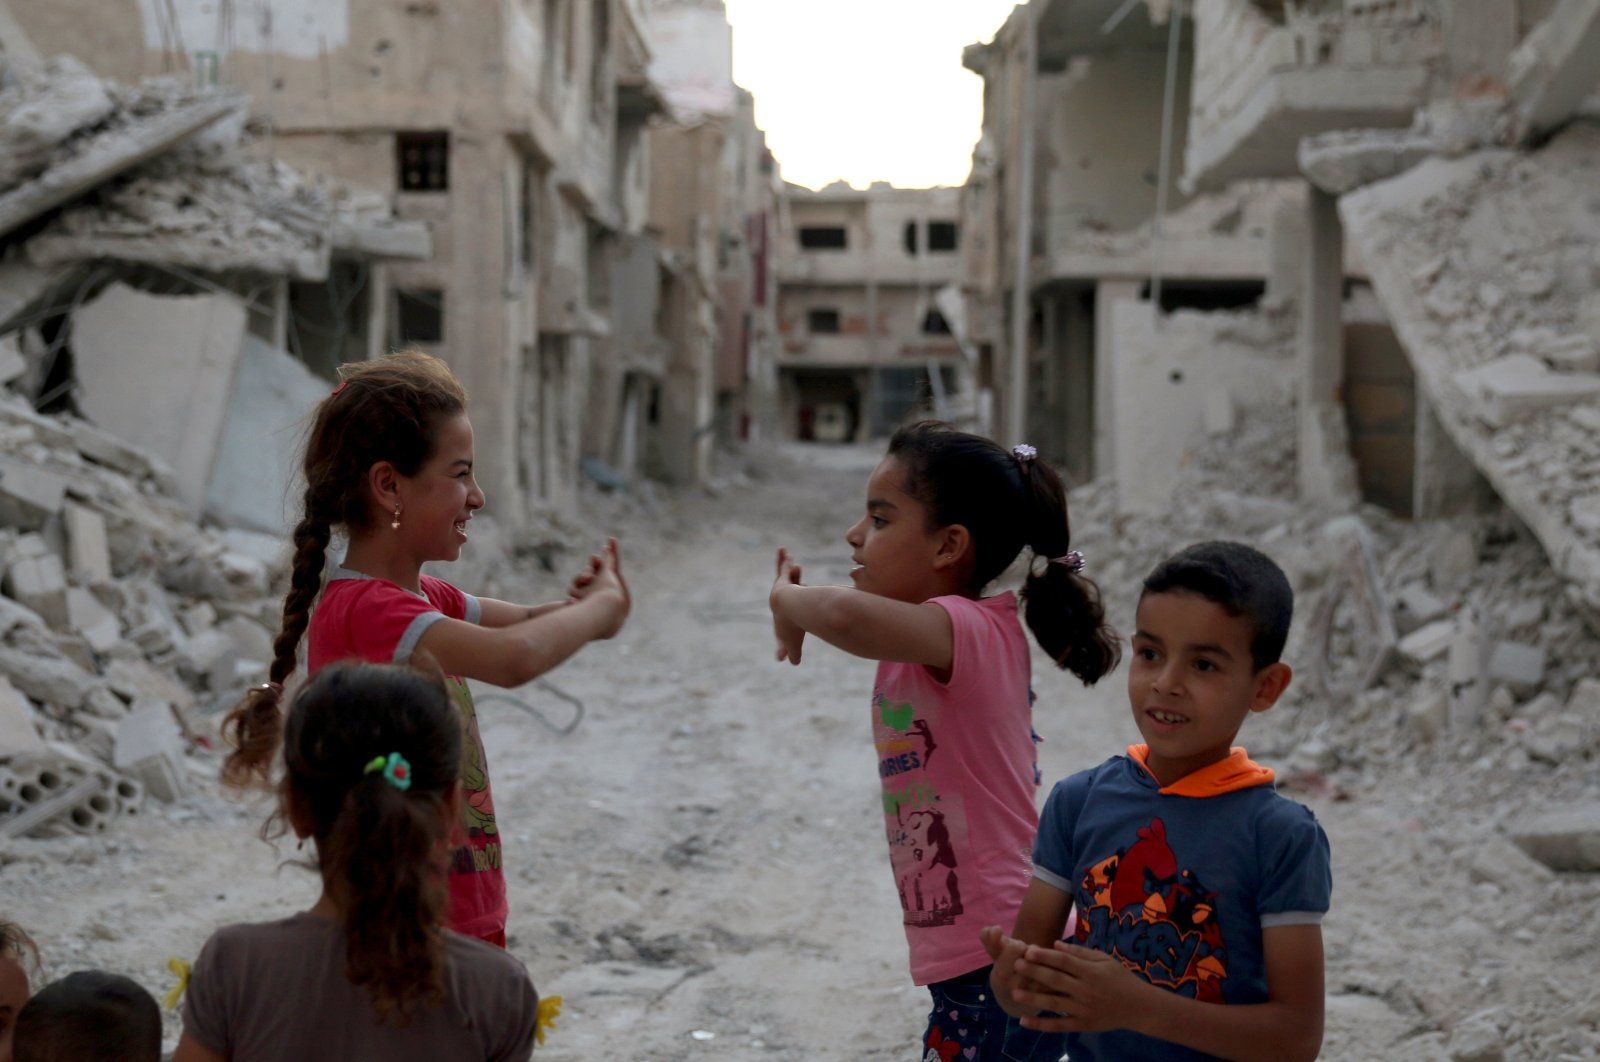 Syrian children are seen play amidst the rubble of damaged buildings in Deraa, July 15, 2017. (Reuters)